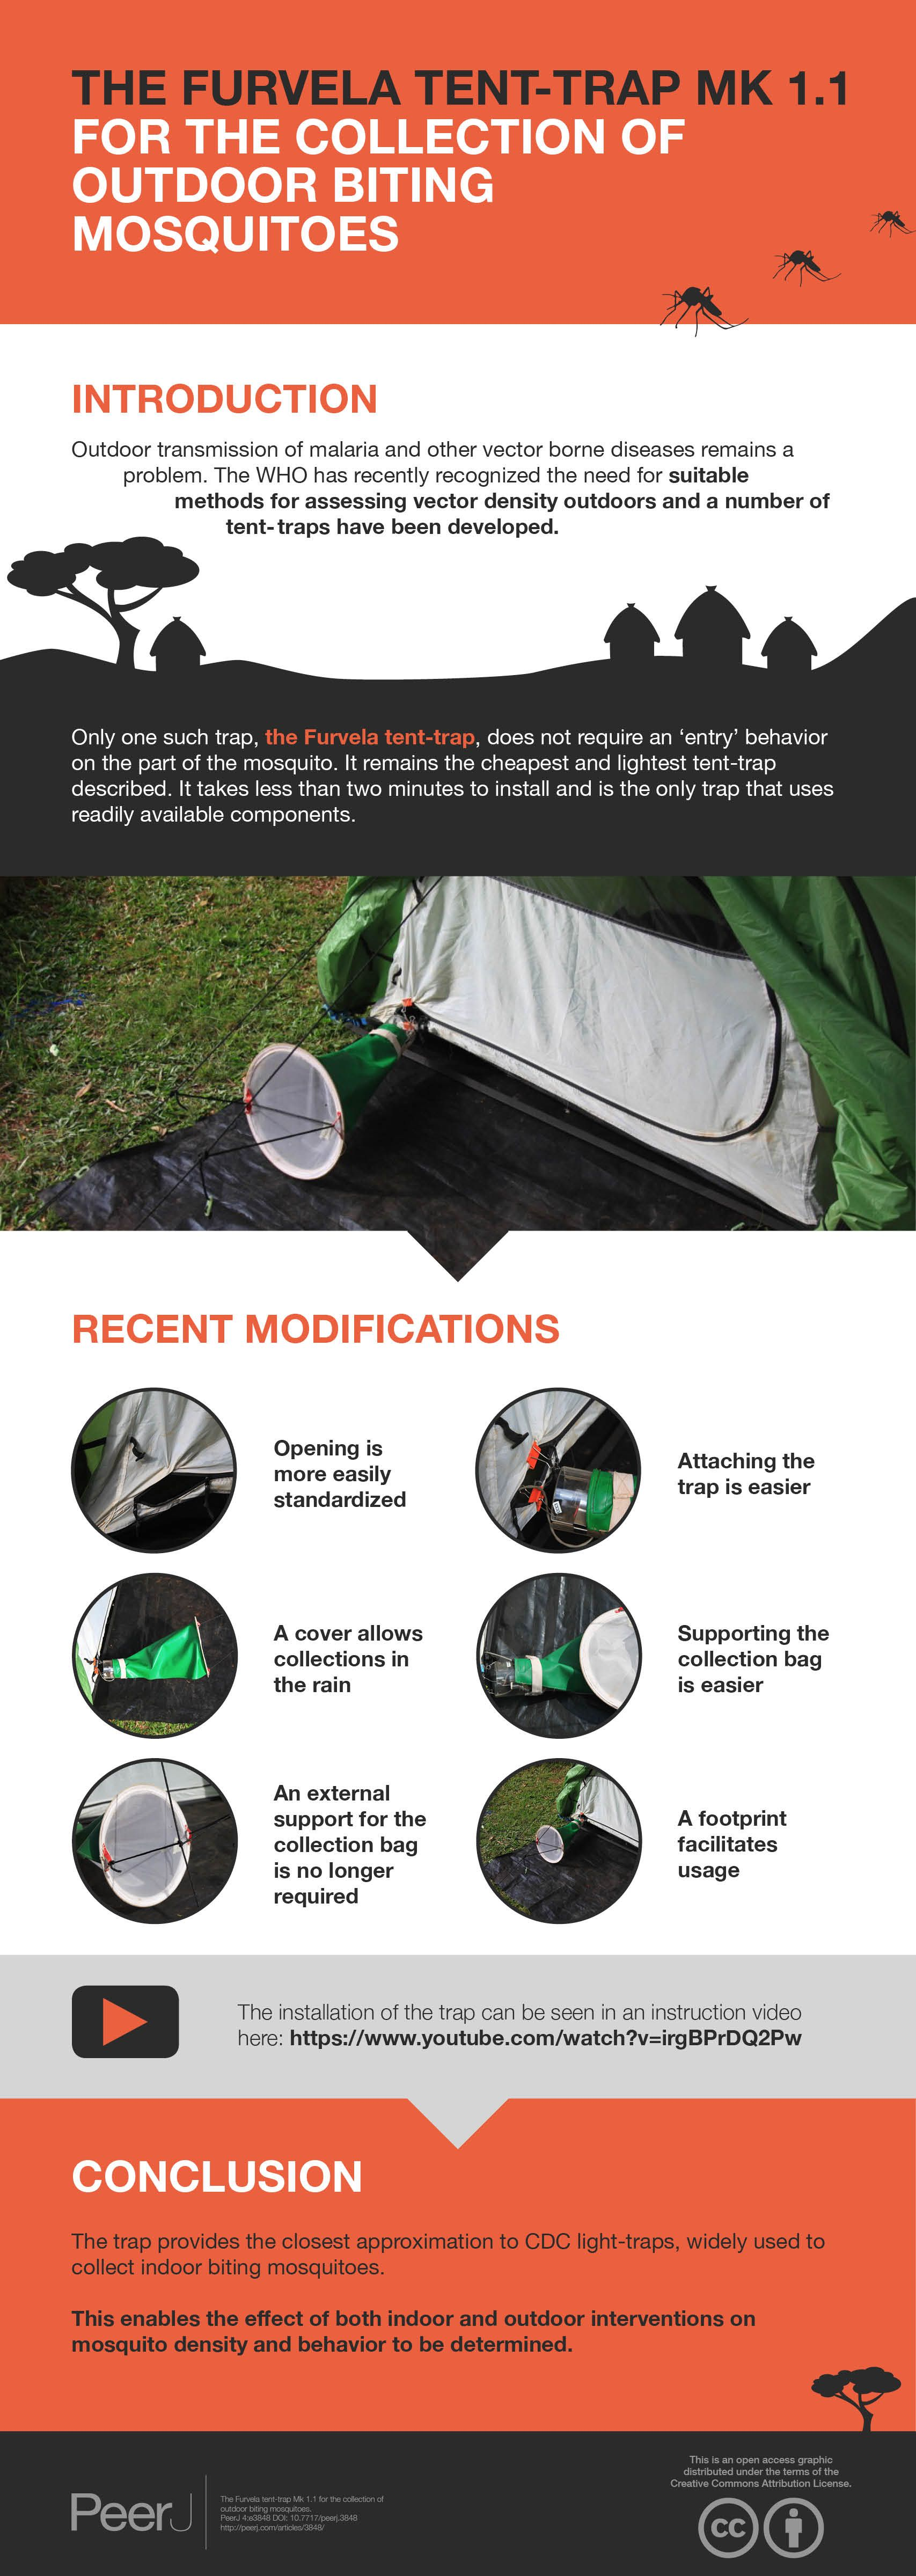 The Furvela tenttrap Mk 1.1 for the collection of outdoor